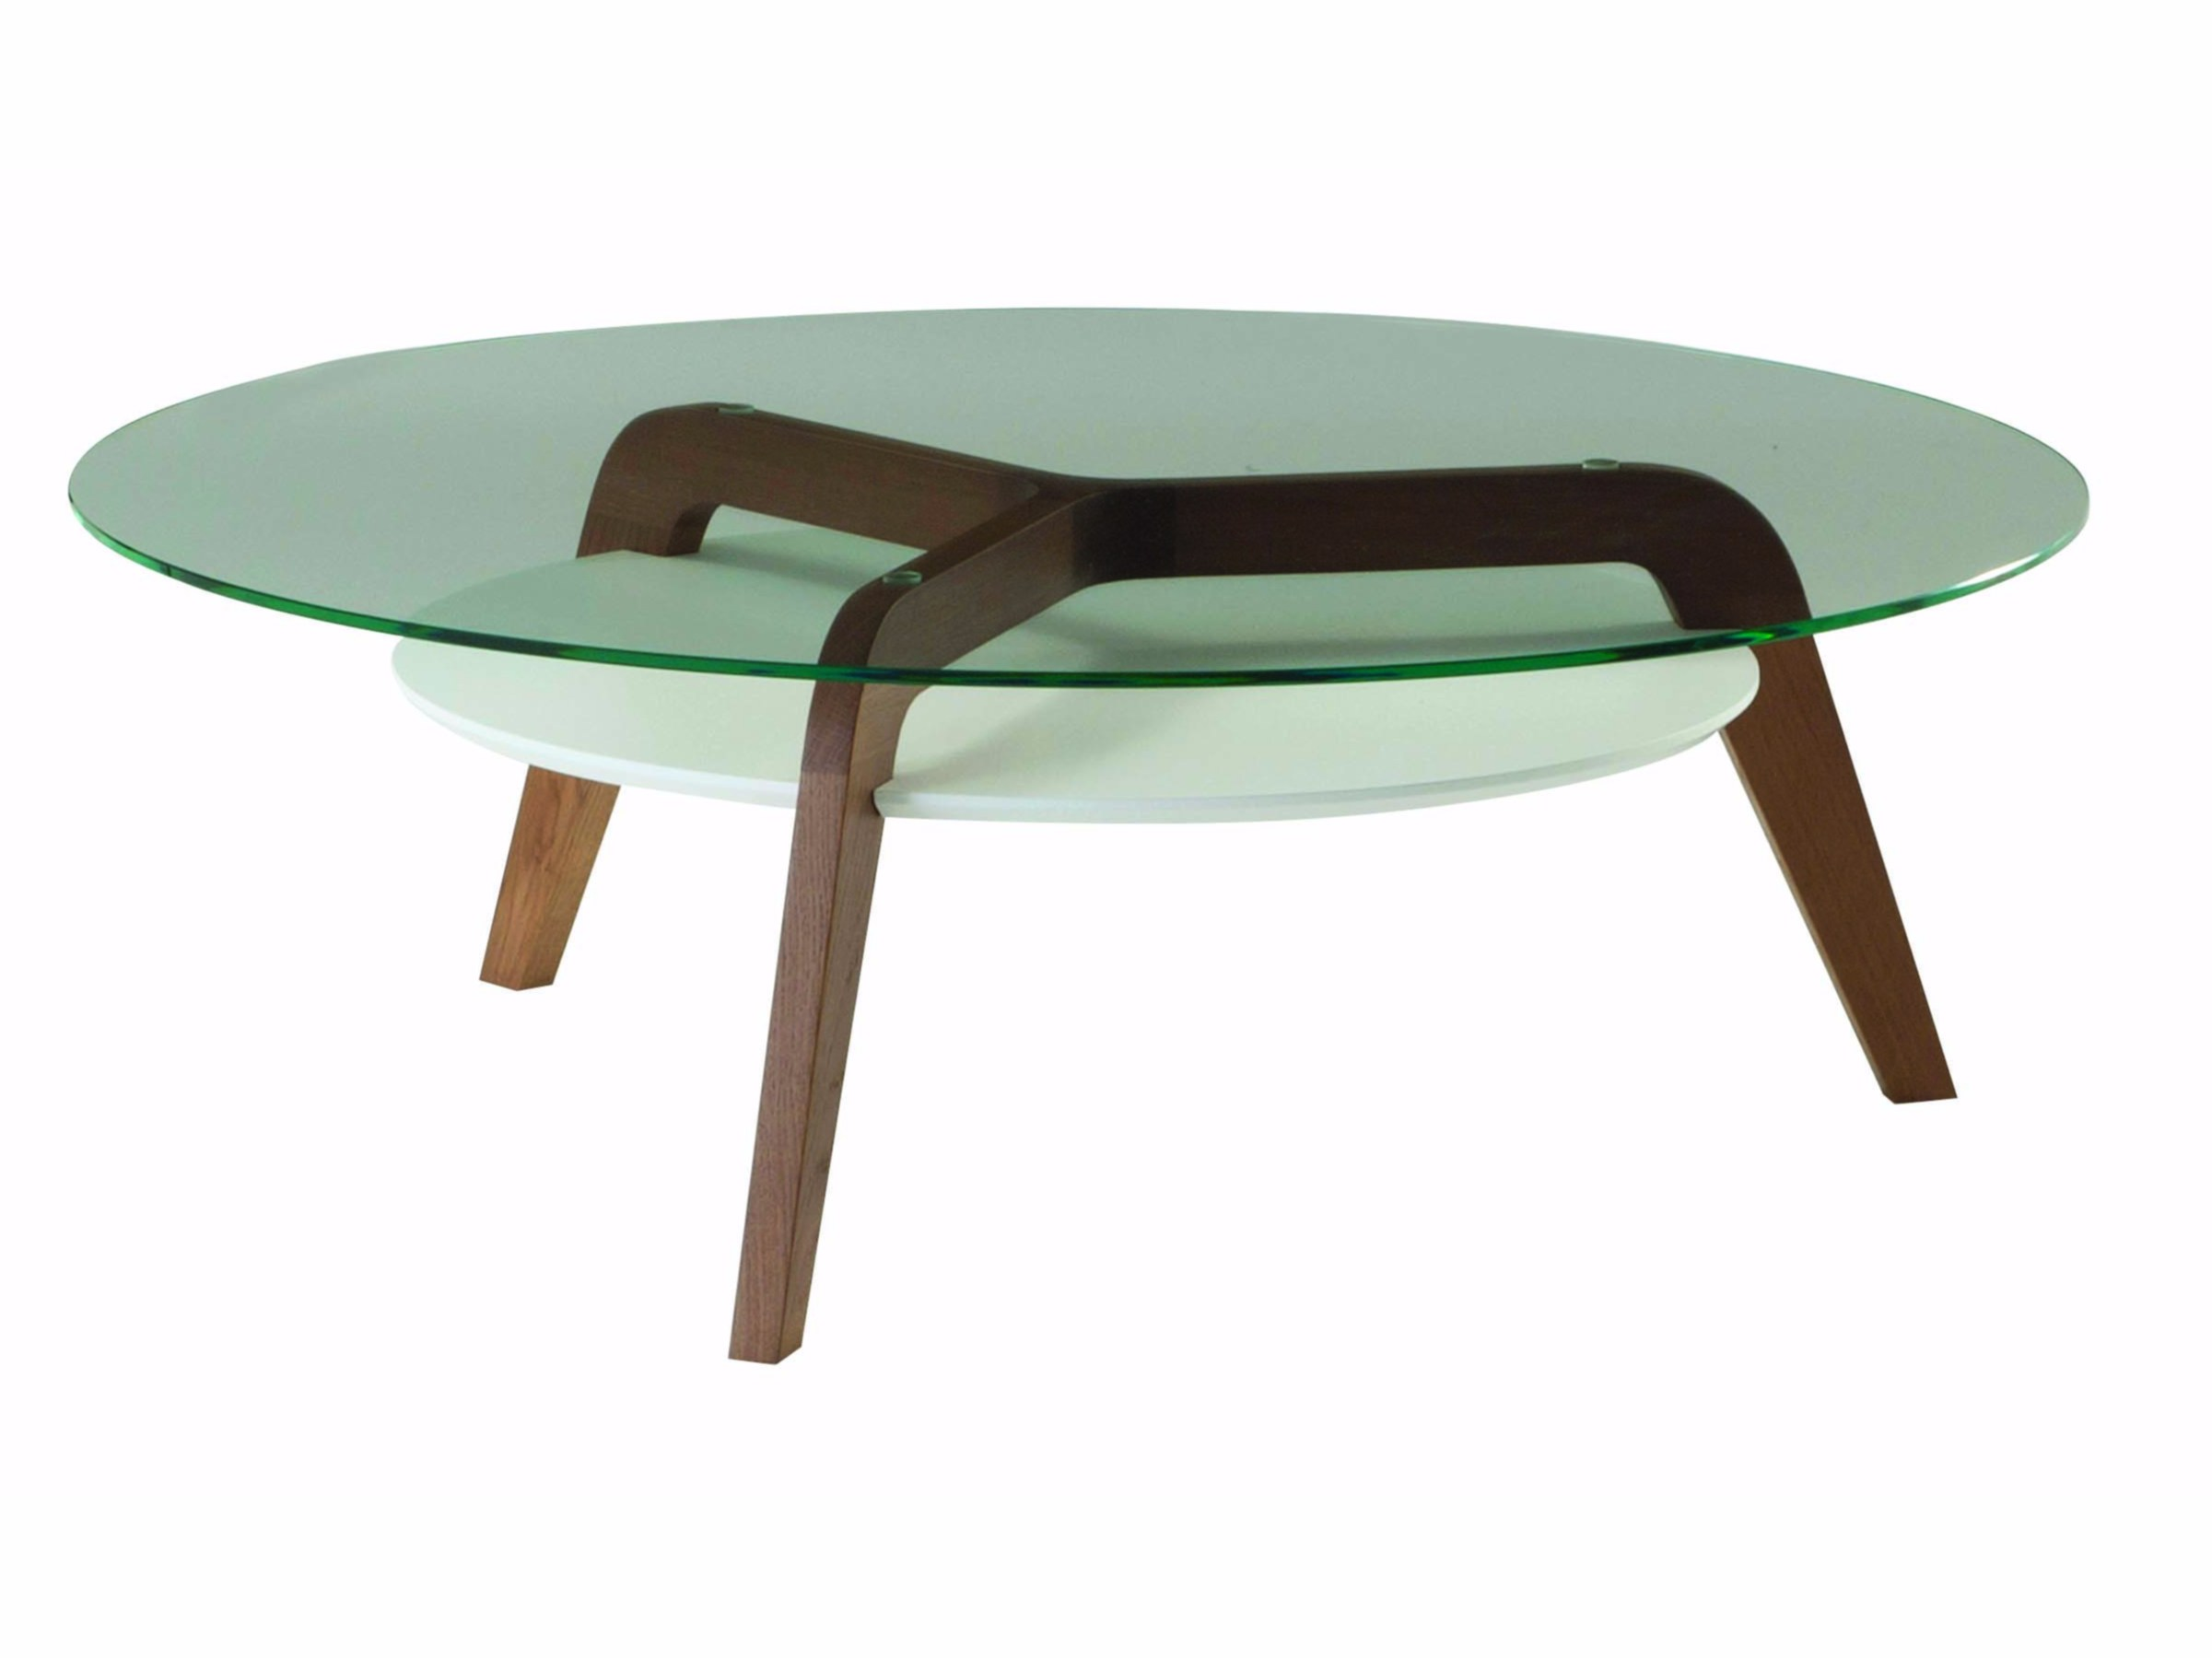 table basse ronde en verre de salon flying glass by roche bobois design sacha lakic. Black Bedroom Furniture Sets. Home Design Ideas